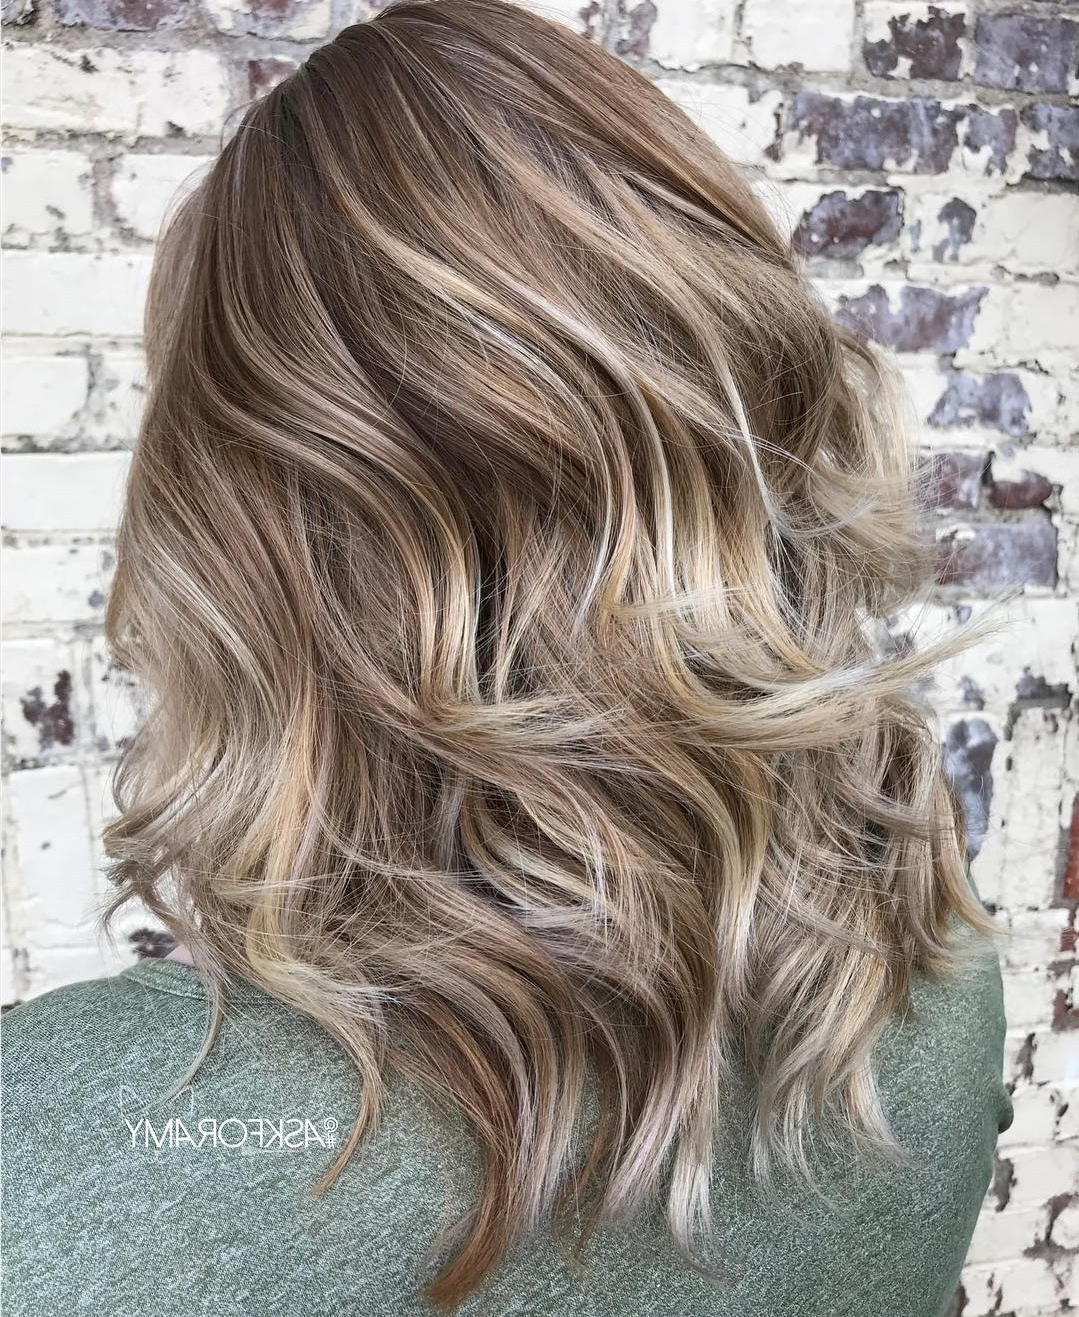 Most Current Long Wavy Layers Hairstyles Within 50 Fabulous Medium Length Layered Hairstyles – Hair Adviser (View 11 of 20)